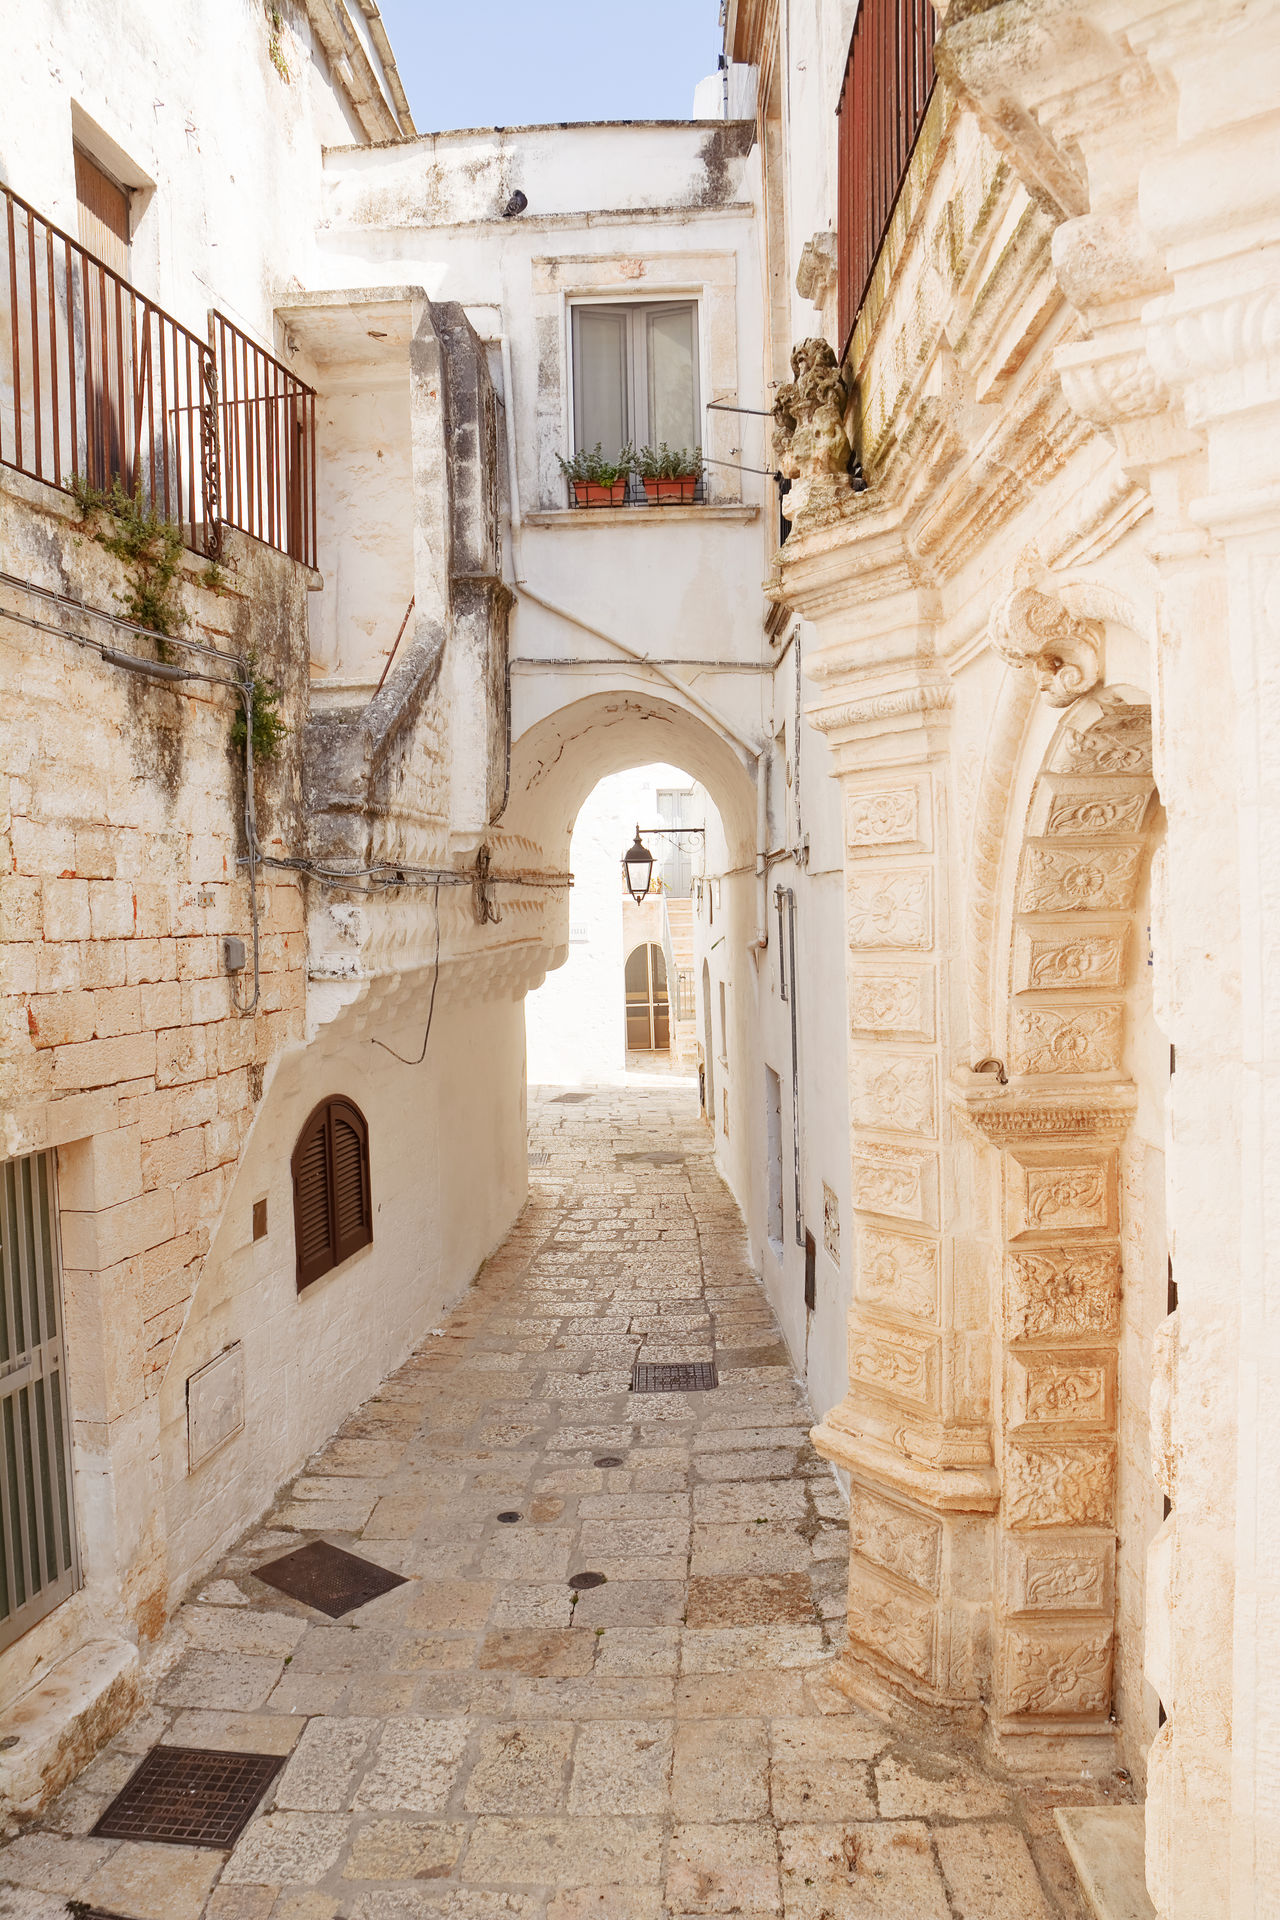 Alley of Cisternino in Puglia (Italy) Alley Alleyway Apúlia Architecture Borgo Brindisi Characteristic Cisternino Fasano Historic House Italian Italy Itria Ostuni Pavement Picturesque Puglia Road Salento Street Typical Village